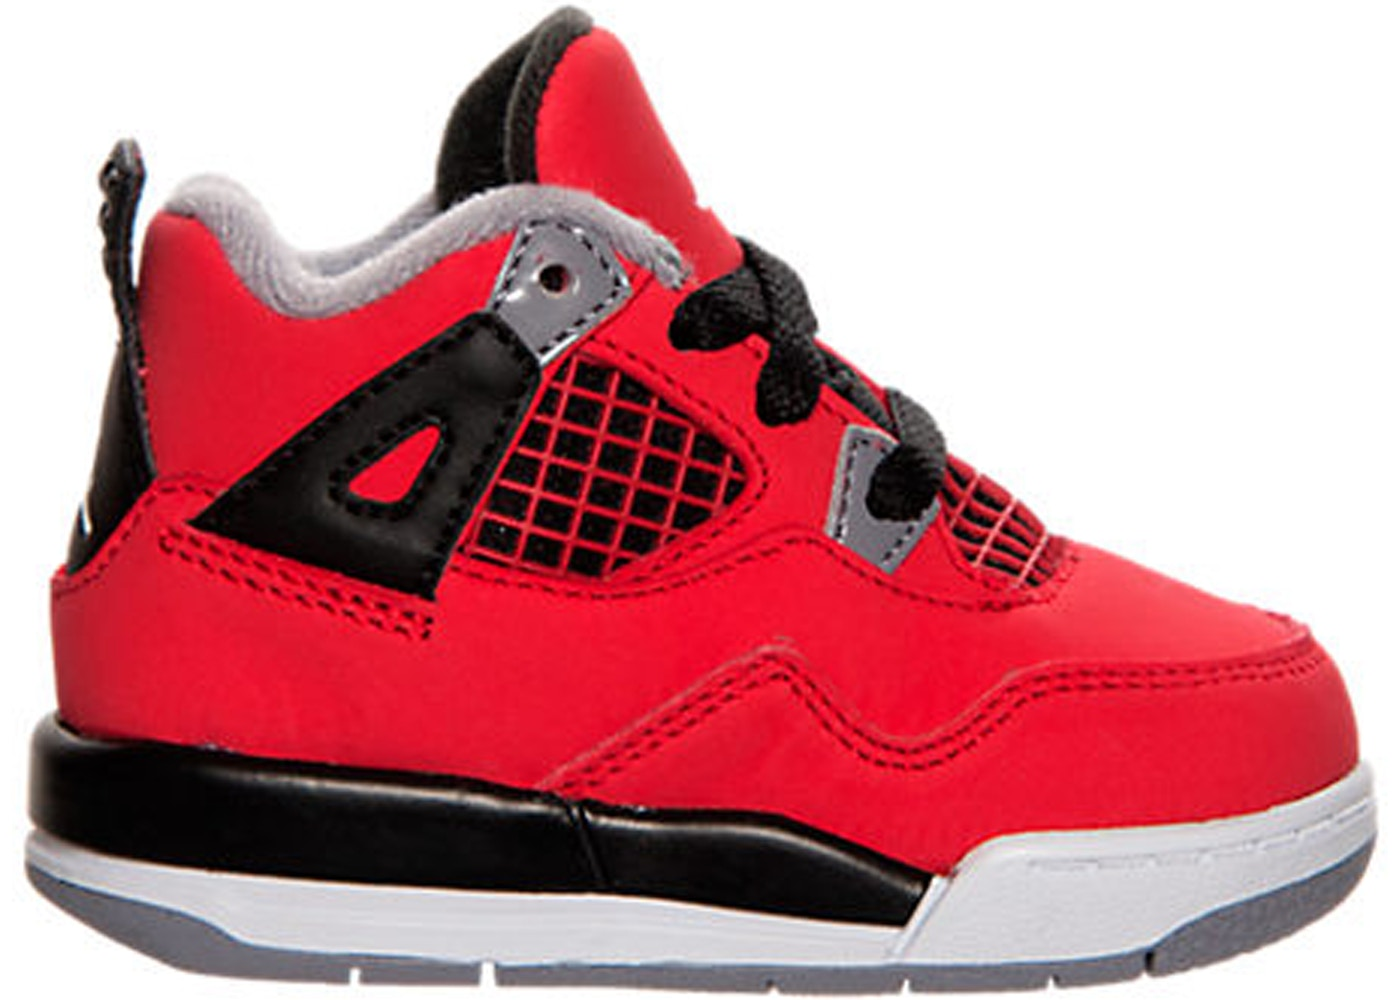 low priced 52320 746c0 Jordan 4 Retro Toro Bravo (TD)